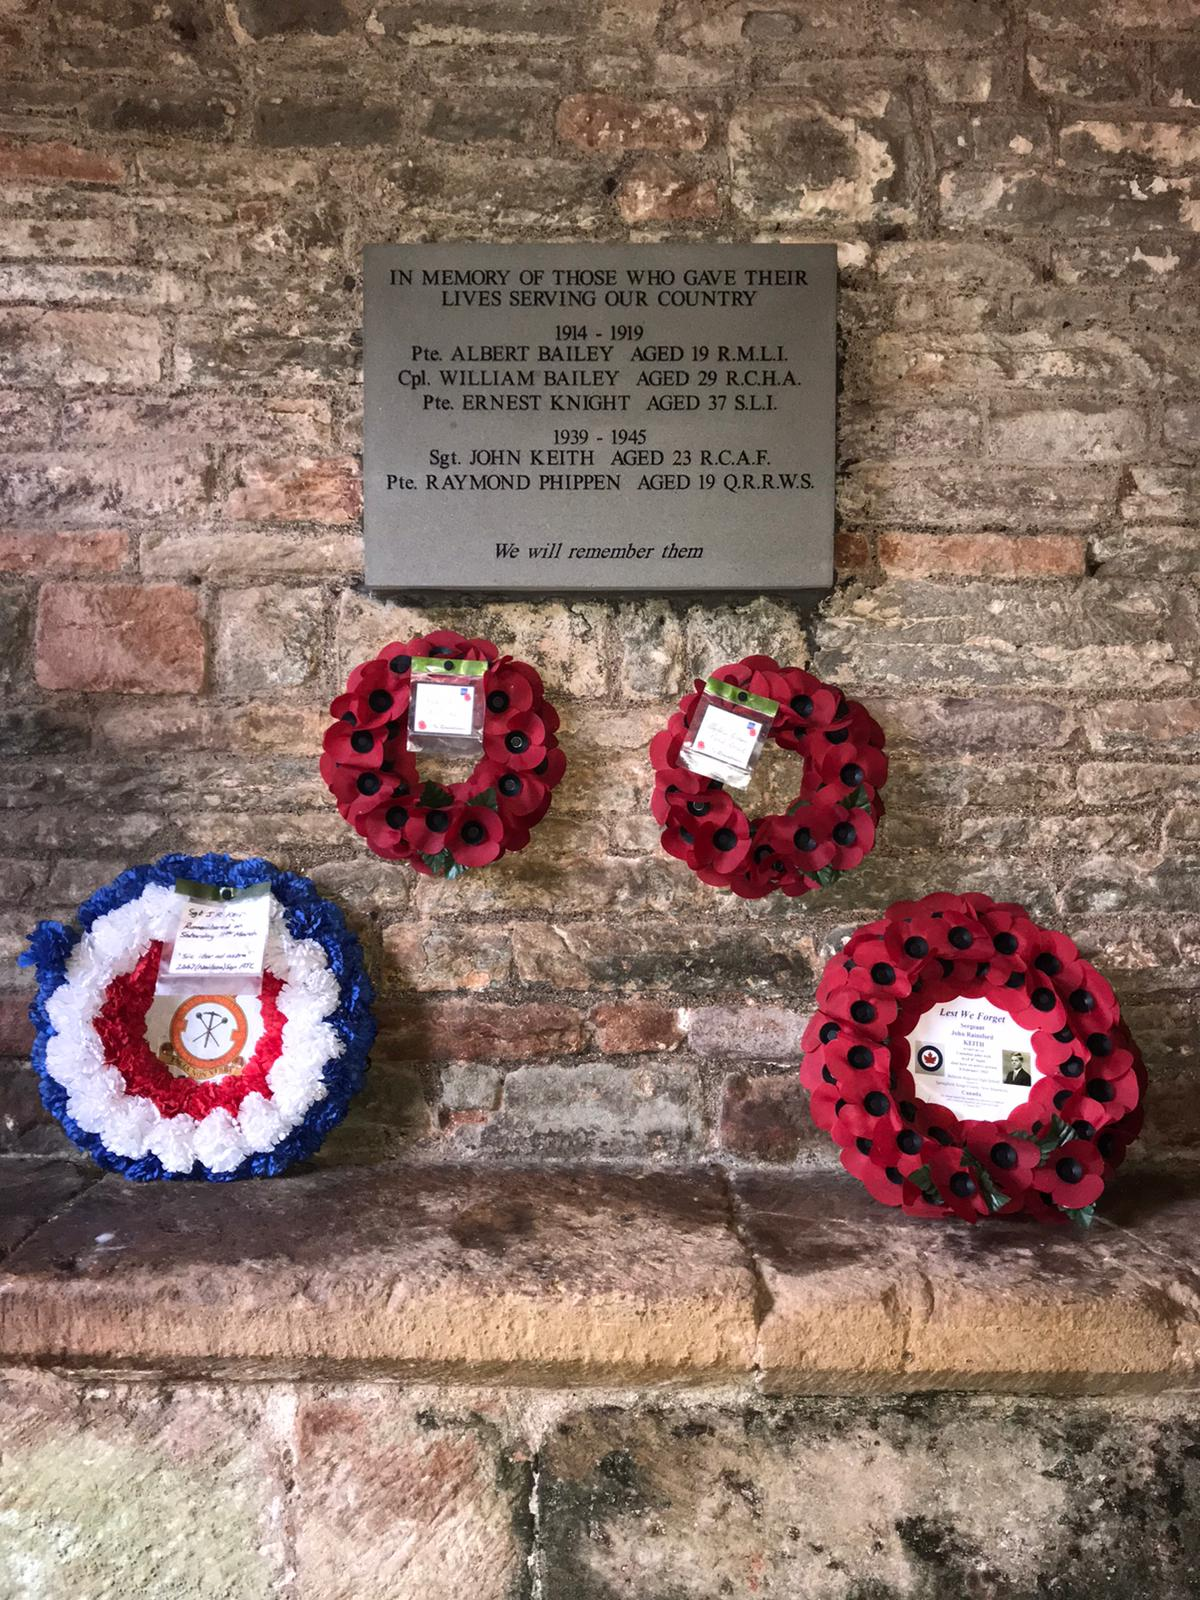 Remembrance wreaths laid at the War Memorial Plaque 2020